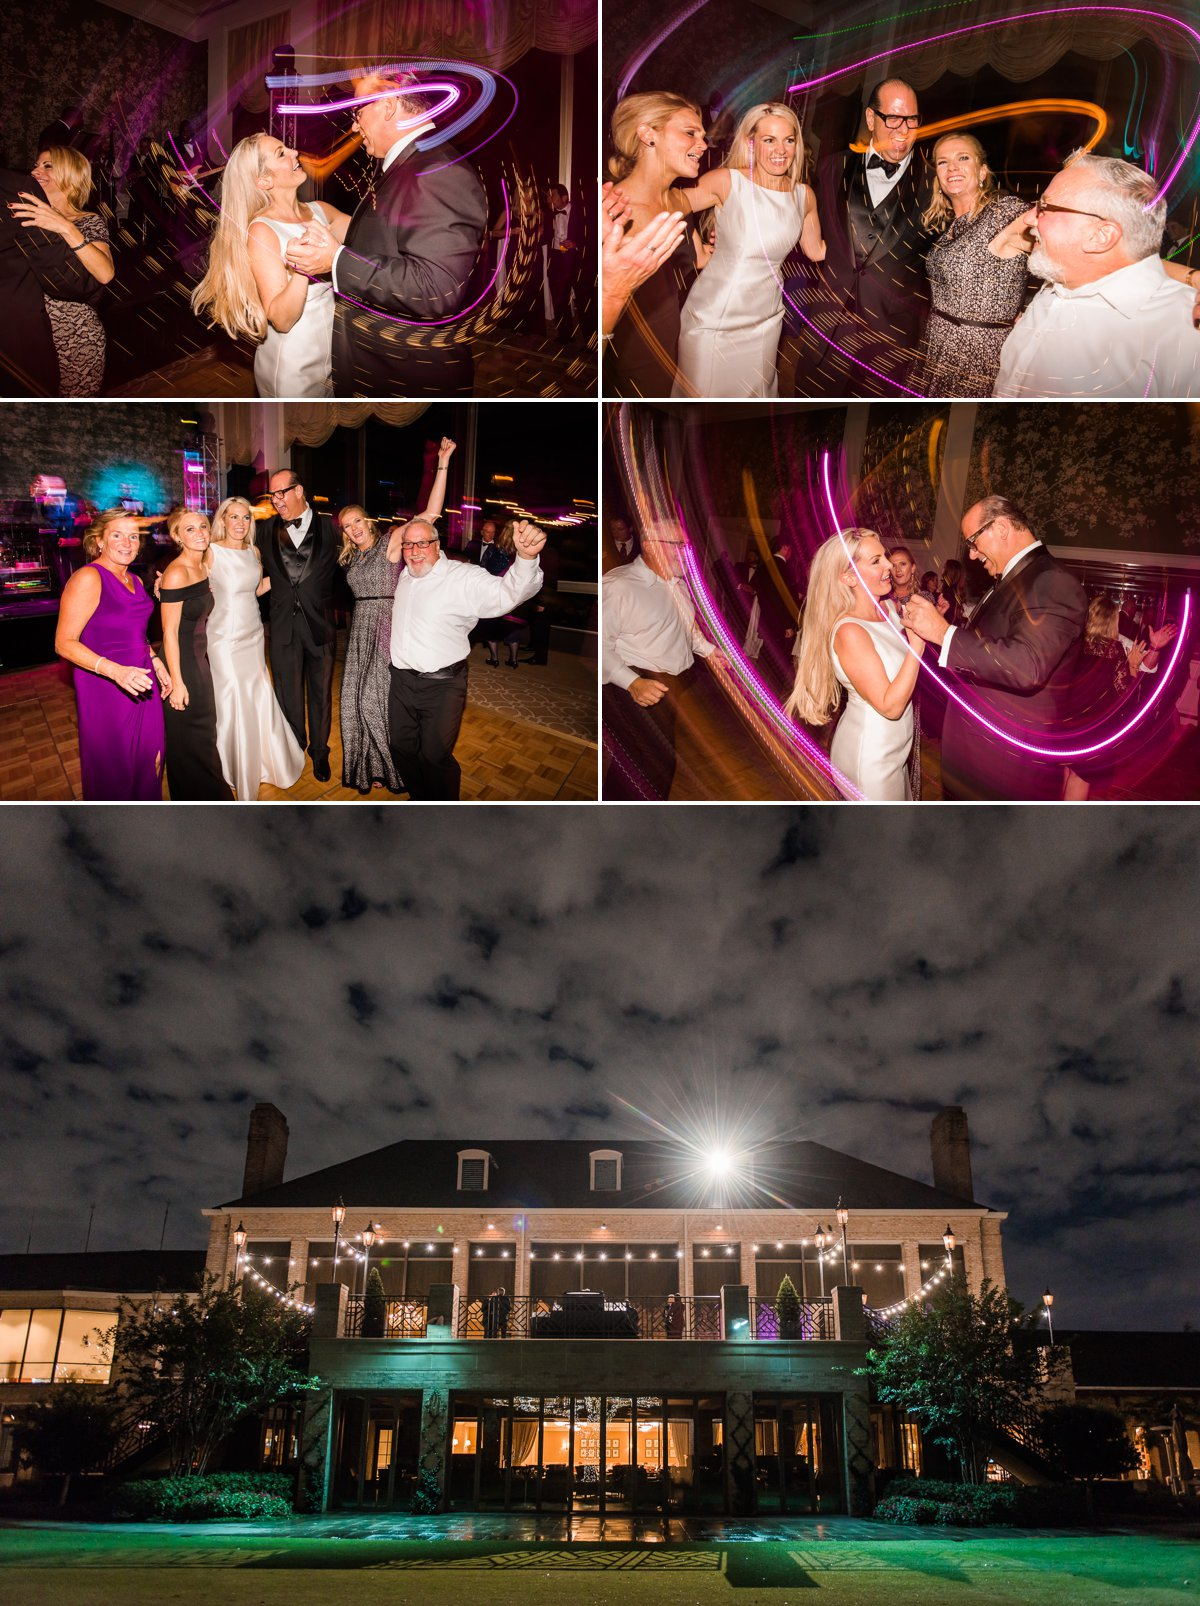 River Oaks Wedding at River Oaks Country Club